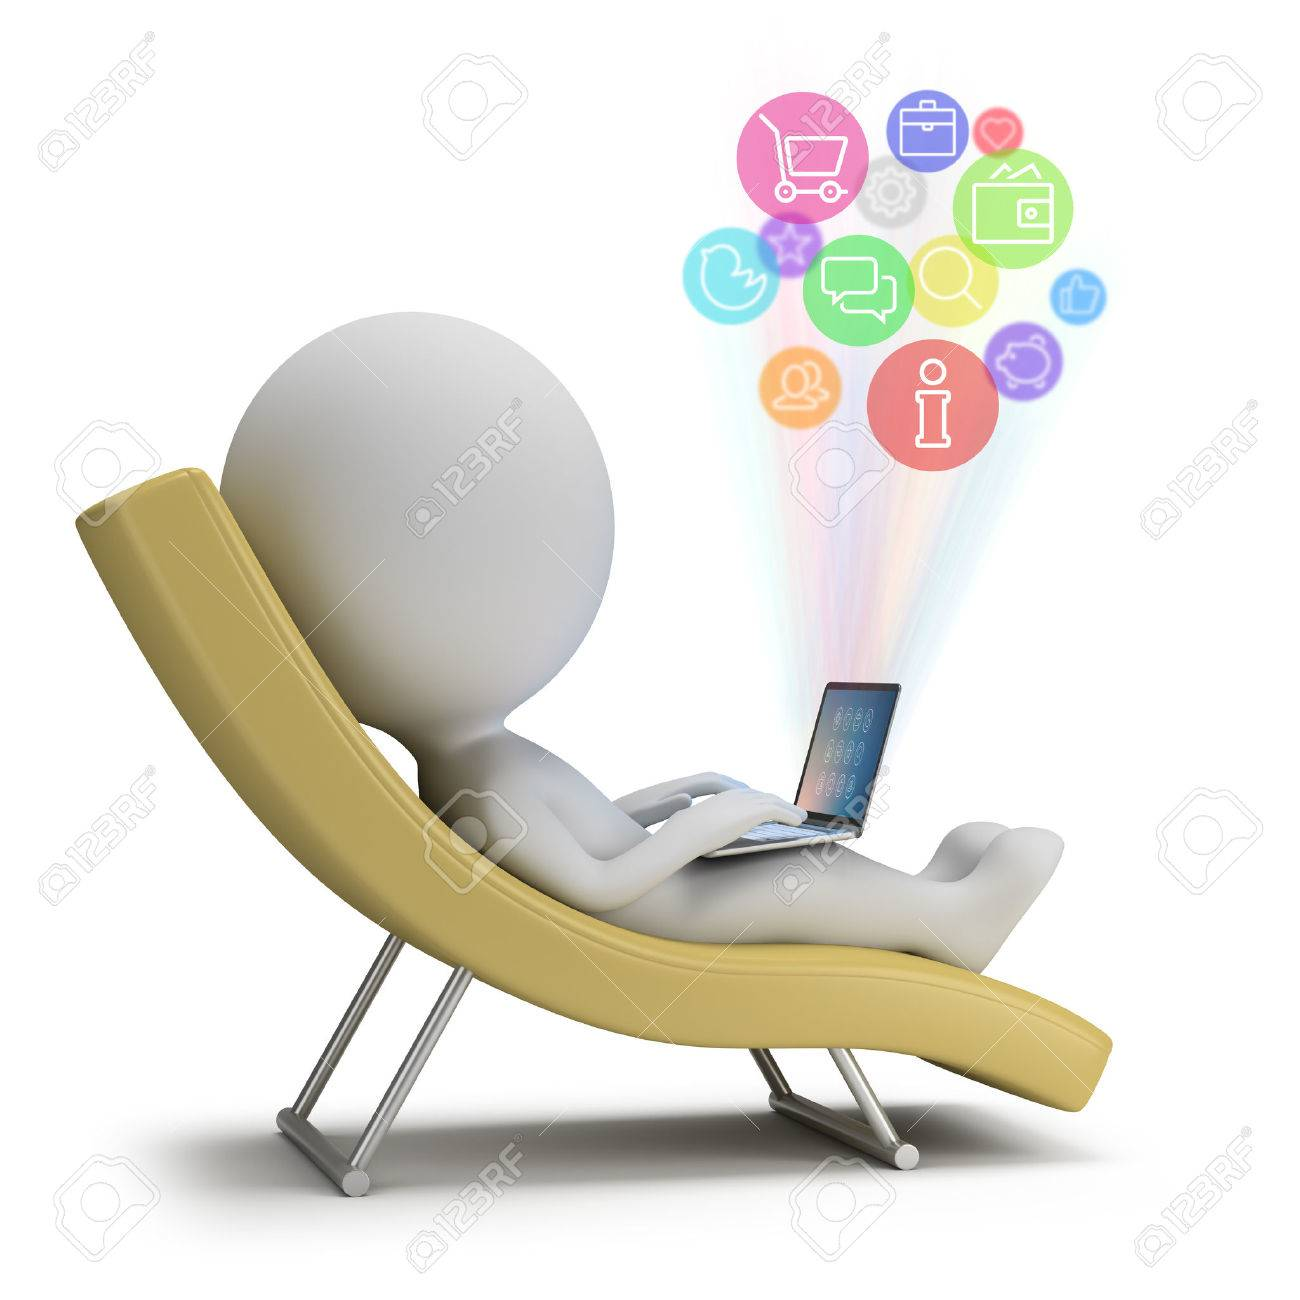 3d small person lies with a laptop on a chaise lounge. Internet services. 3d image. White background. Stock Photo - 32009857